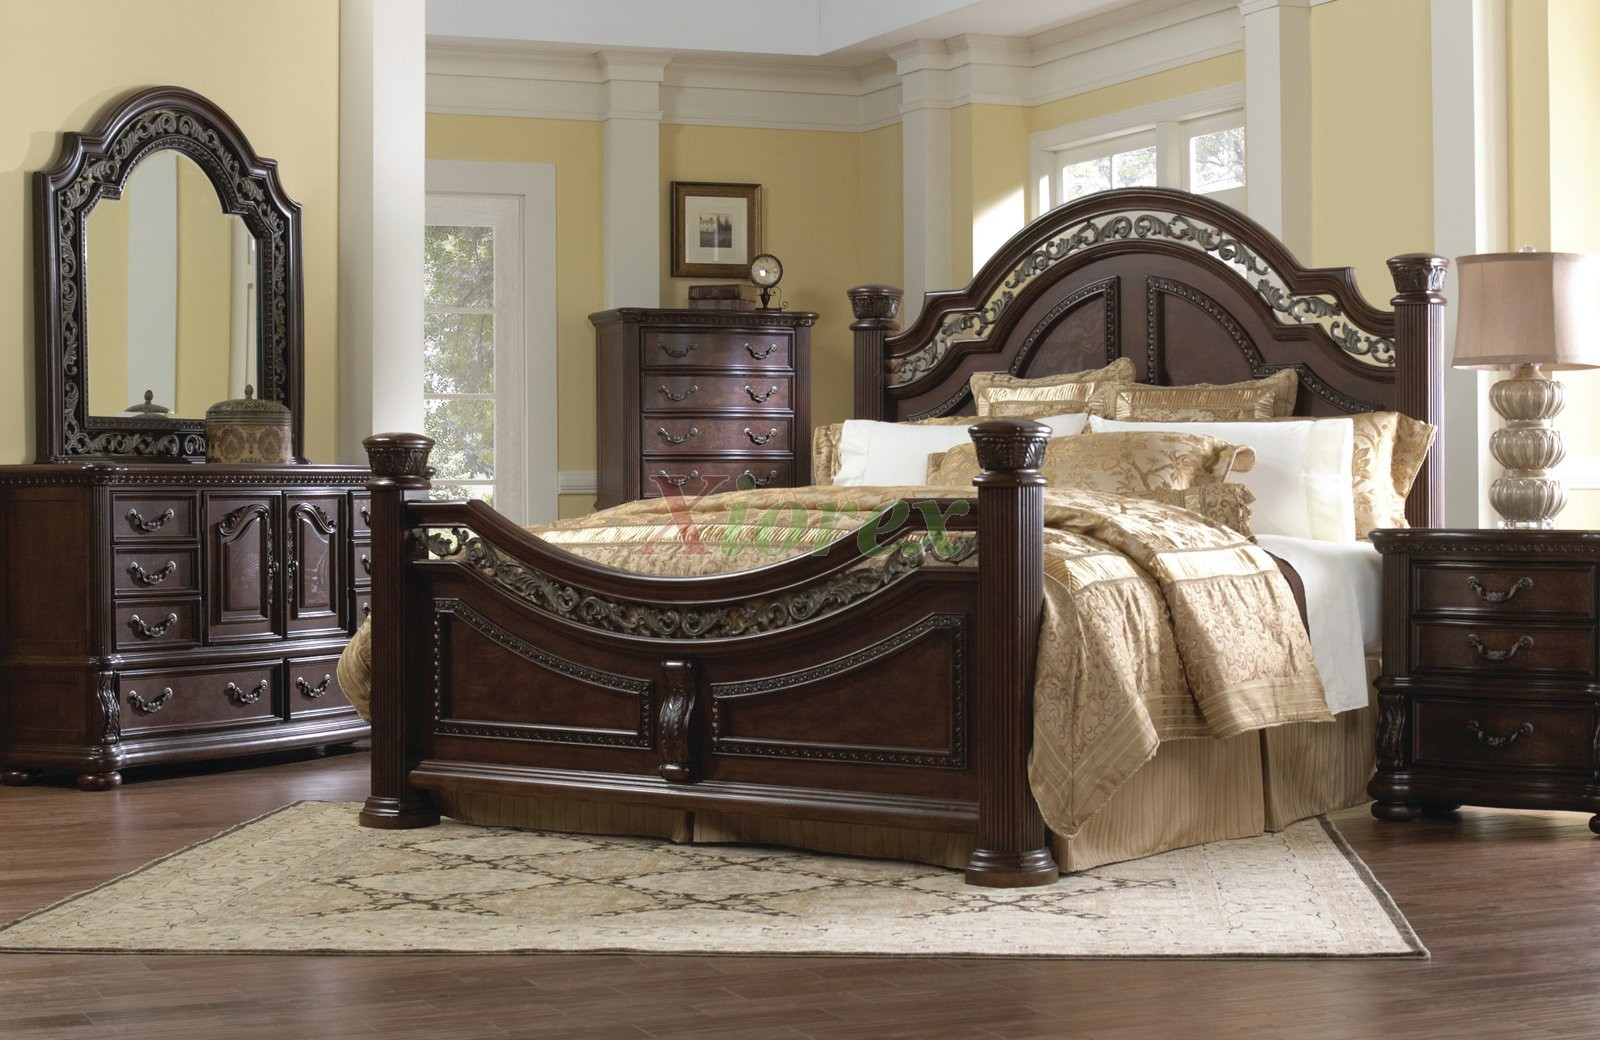 Bedroom Furniture Sets Traditional Bedroom Furniture Set W Arched Headboard Beds 107 Xiorex